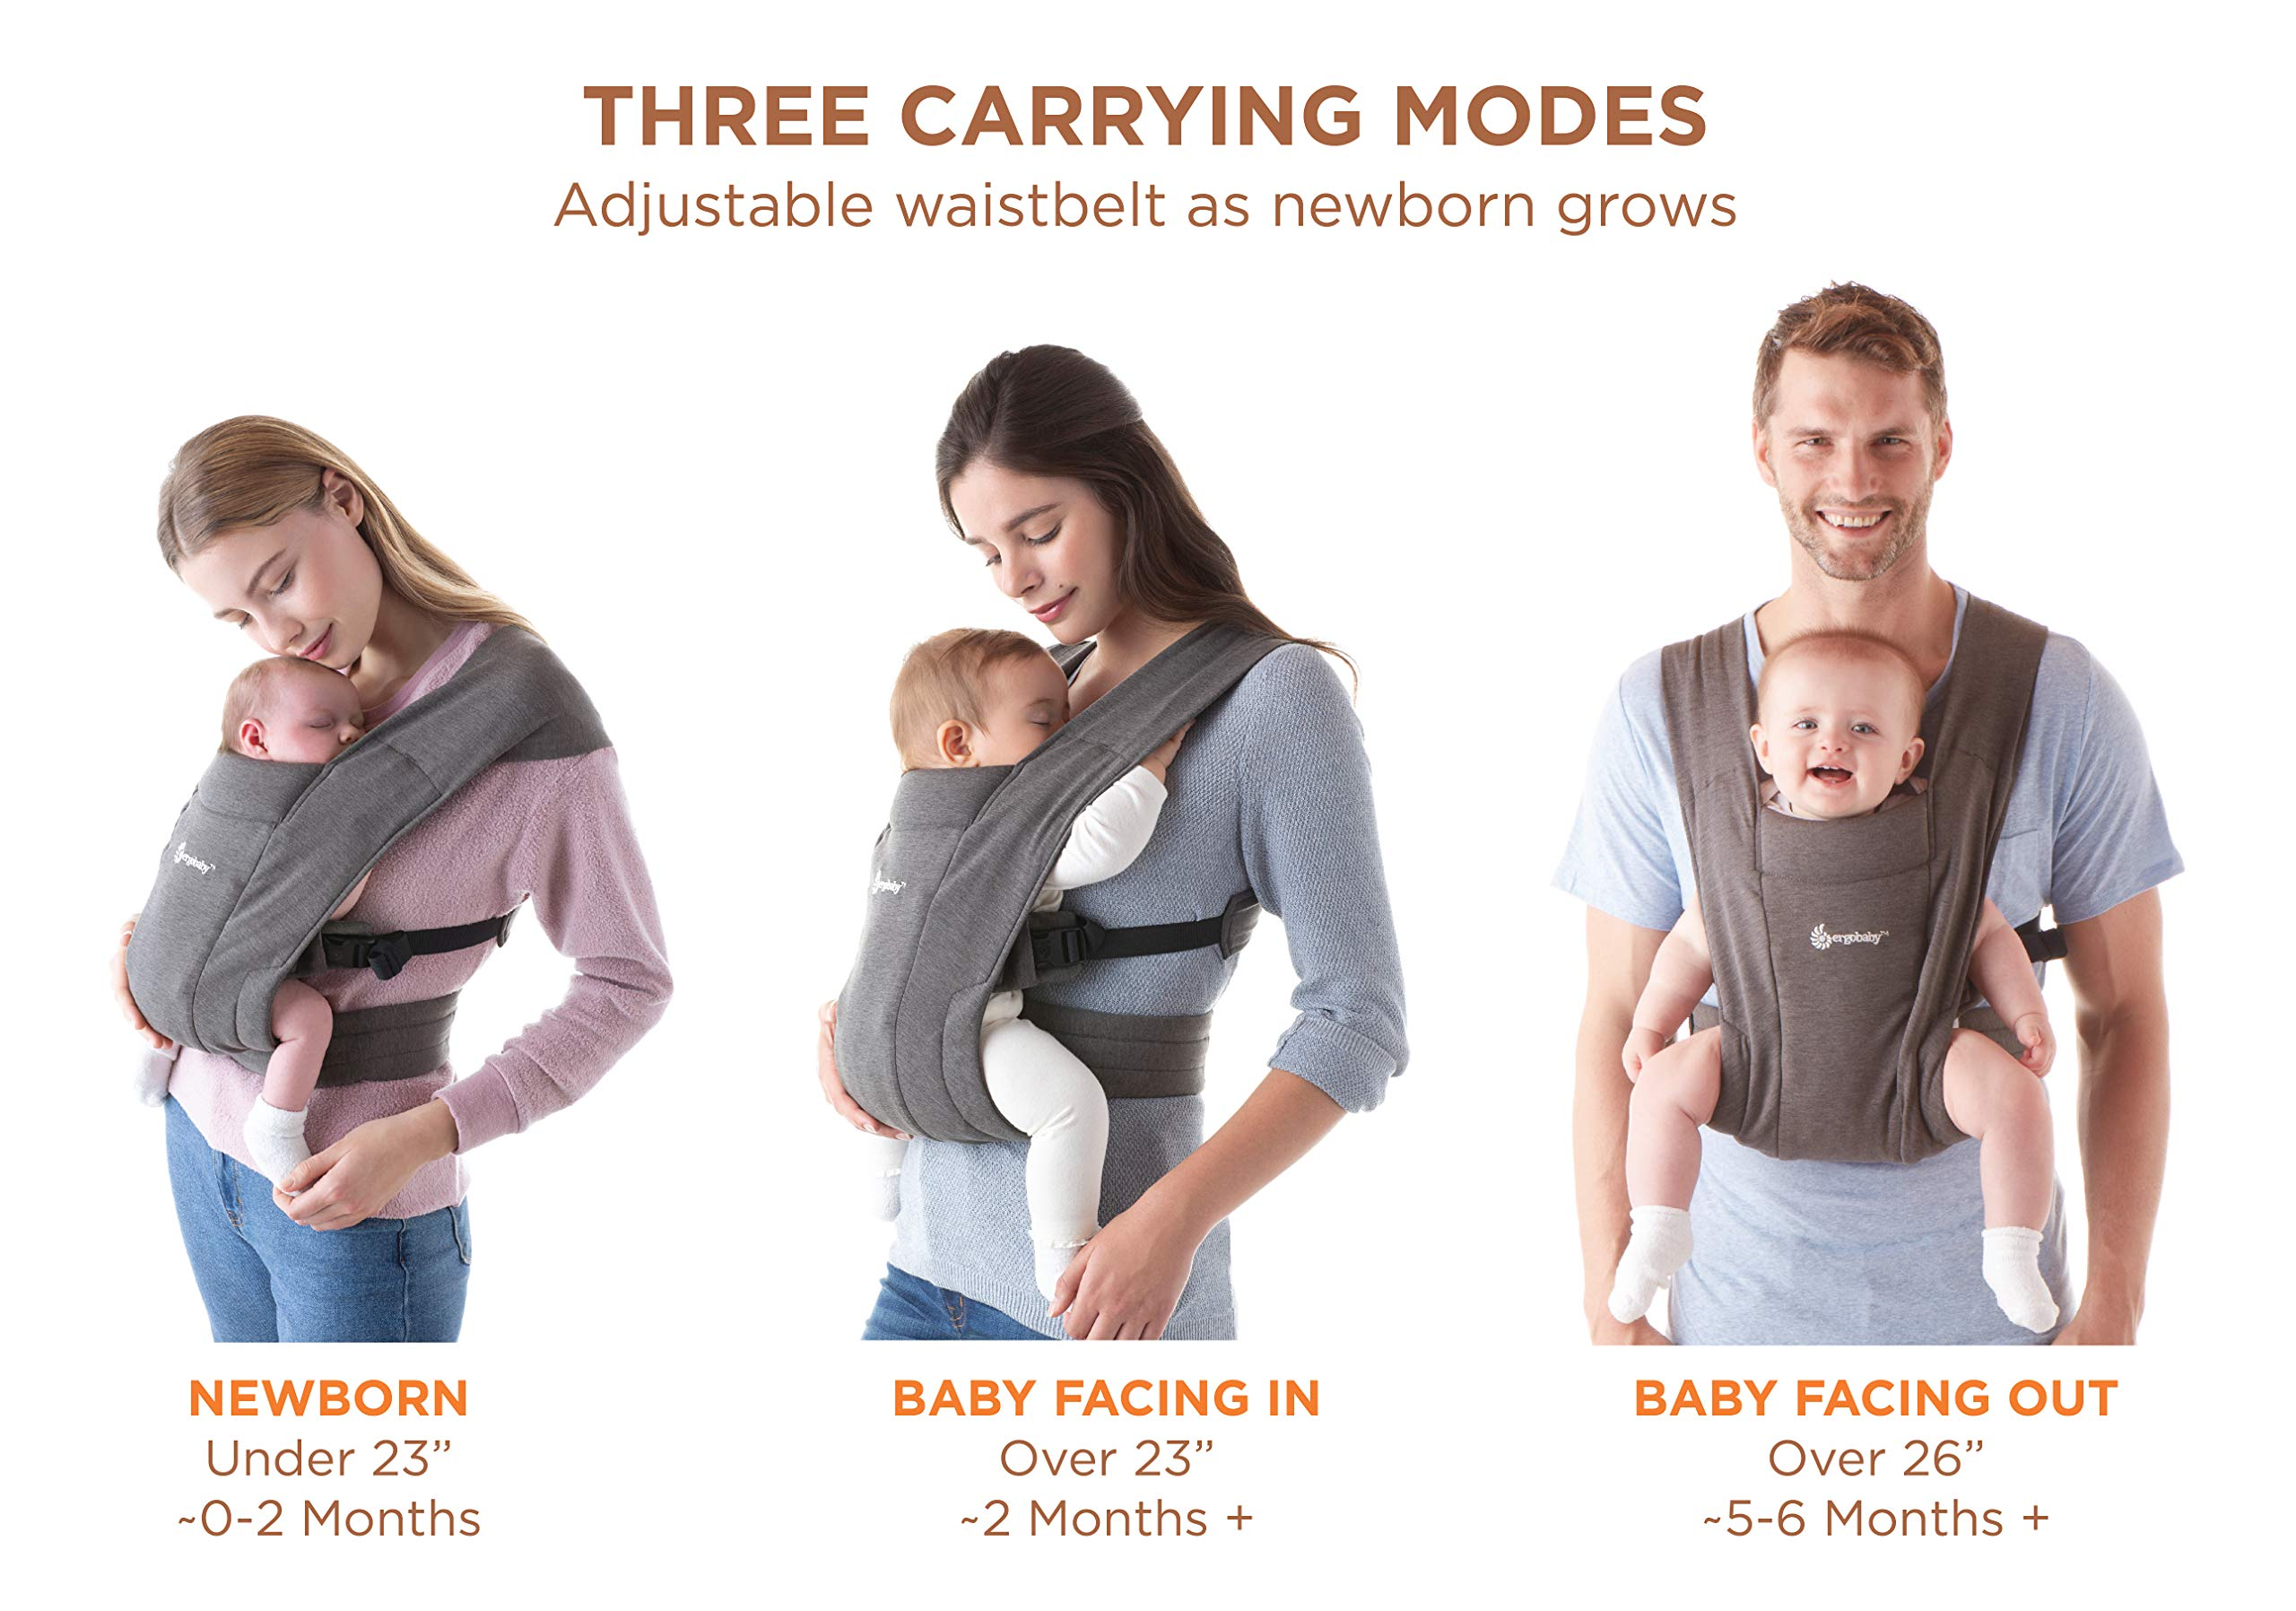 """ErgobabyEmbraceBaby Carrier for Newborns from Birth with Head Support, Extra Soft and Ergonomic (Pure Black) Ergobaby ERGONOMIC BABY CARRIER FROM BIRTH - Carry your newborn baby (3.2 - 11.3kg) snuggled close to you. The baby carrier supports the ergonomic frog-leg position (""""M"""" shape position) of the baby. NEW - The Ergobaby Embrace 2-position Carrier has been specially developed for newborns and babies. A baby carry system for quick and easy use. ULTRA-LIGHT & SUPER SOFT - Less material against the child and open-sided to allow good air circulation. Made from super soft jersey fabric, Oeko-Tex100 certified. Lightweight carrier (approx. 480g). 7"""